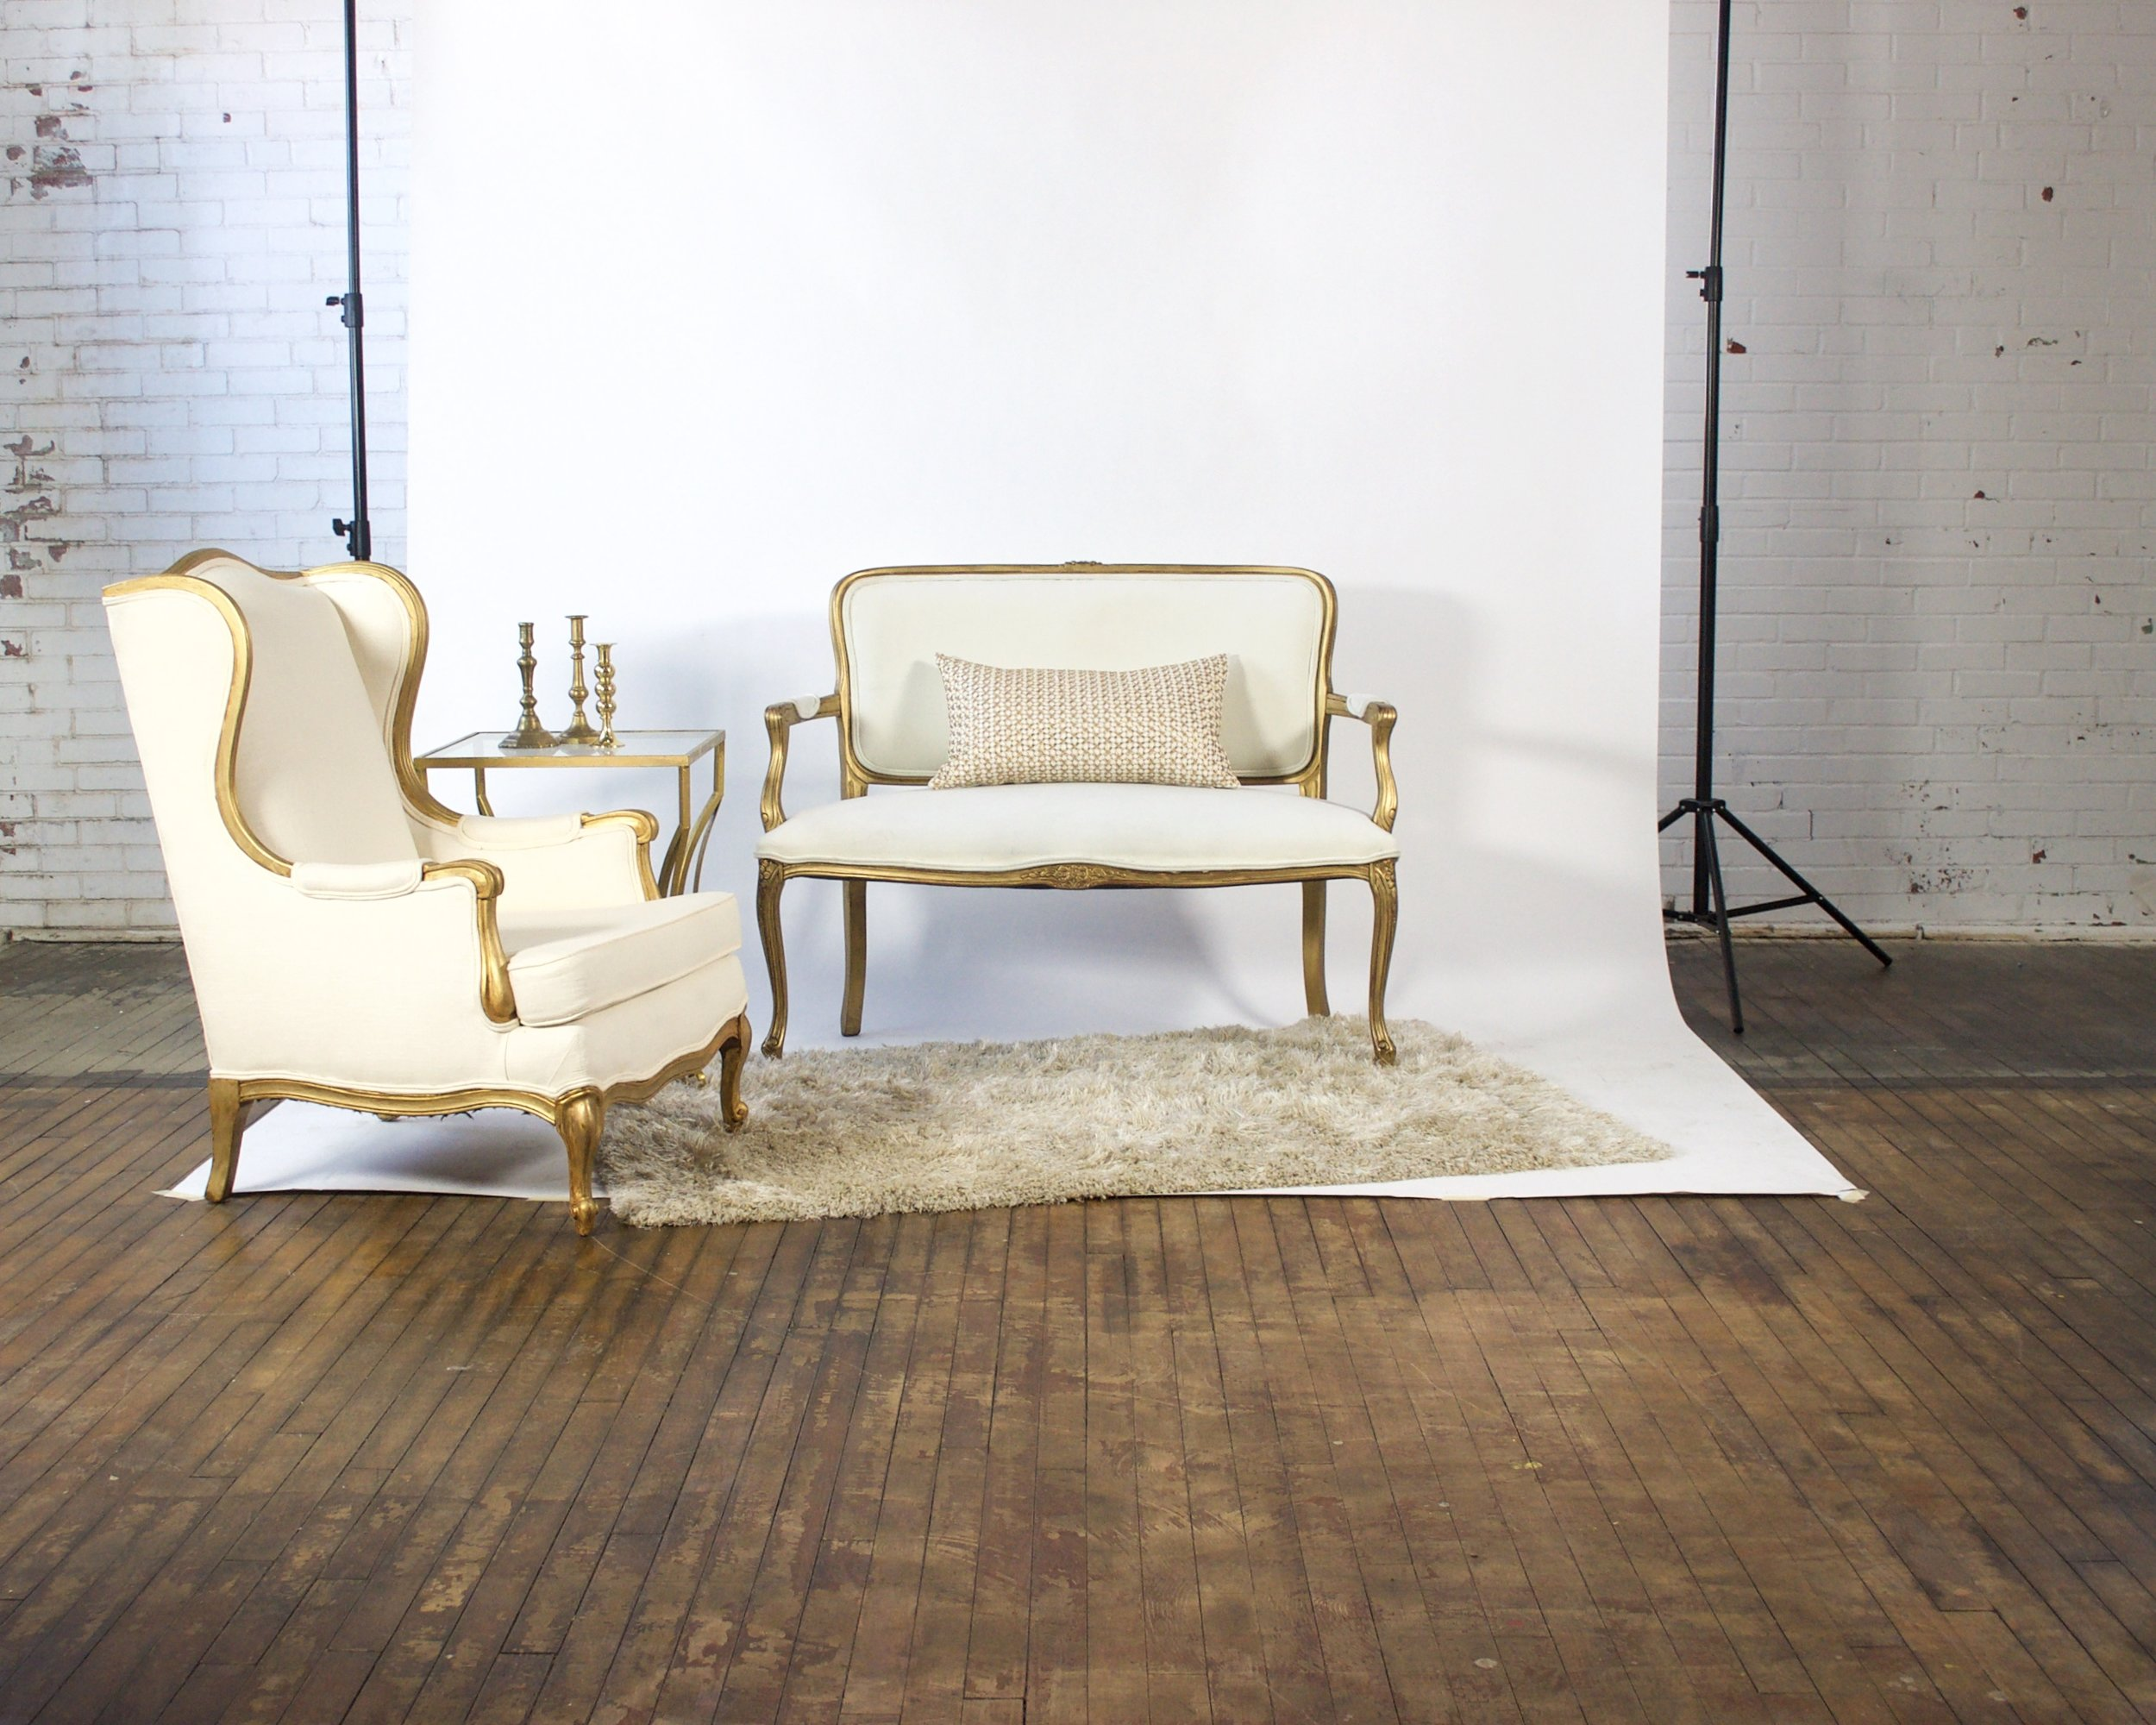 Goldfinger and Golden Ticket Petite - featuring shaggy champagne rug and gold square top table